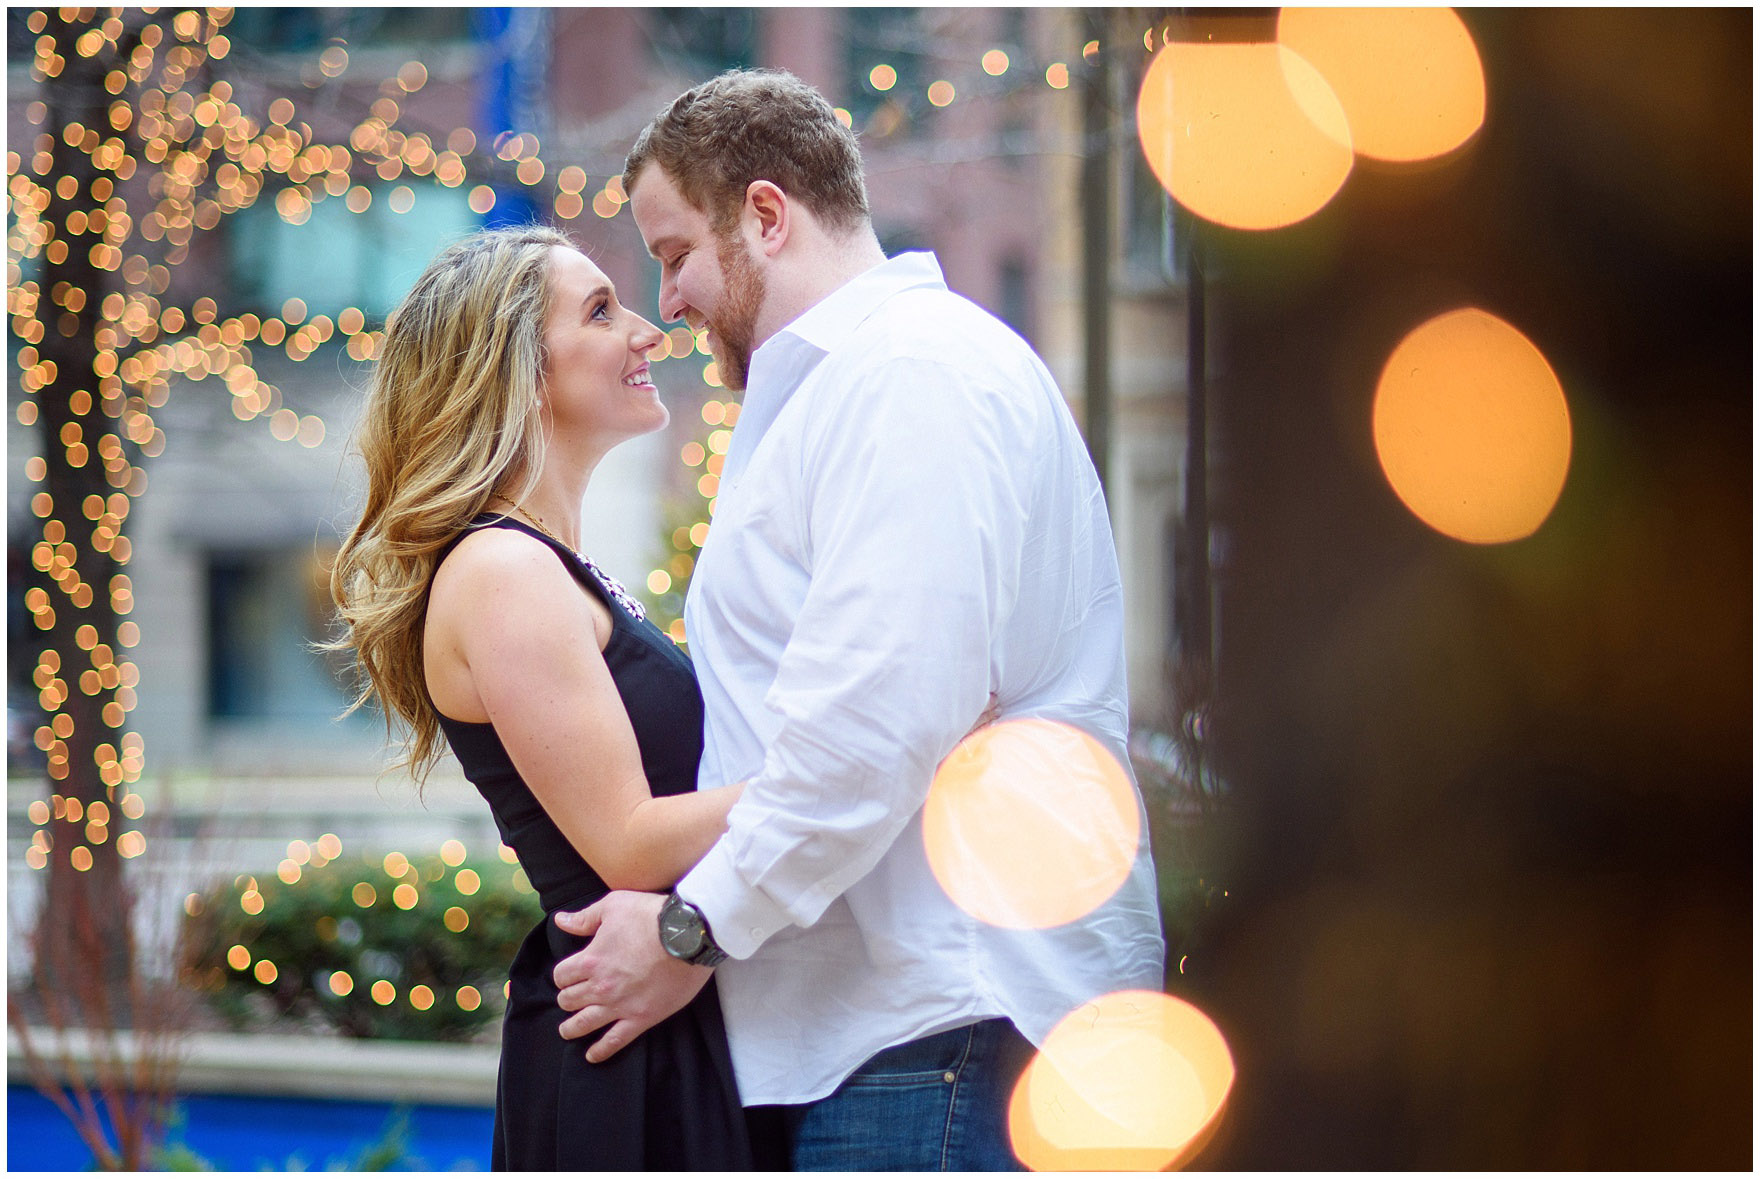 A couple is surrounded by twinkly lights during a downtown Chicago city engagement photography session.